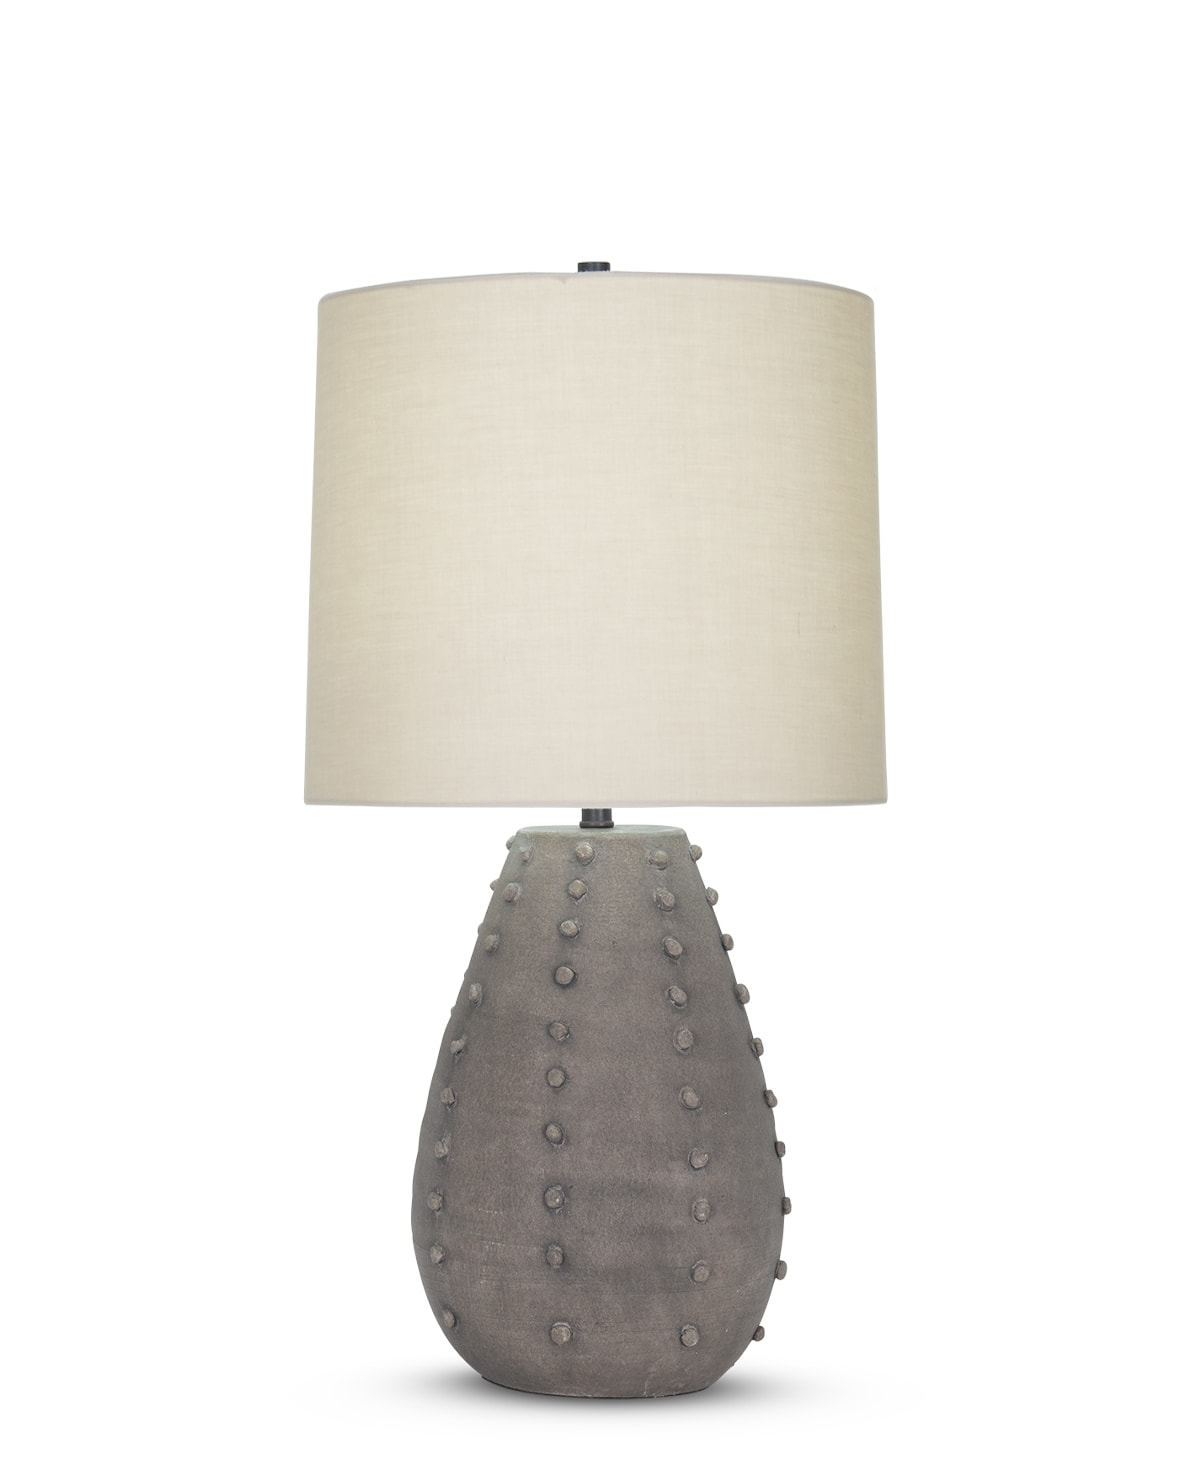 FlowDecor Camilla Table Lamp in ceramic with taupe finish and beige cotton tapered drum shade (# 4506)